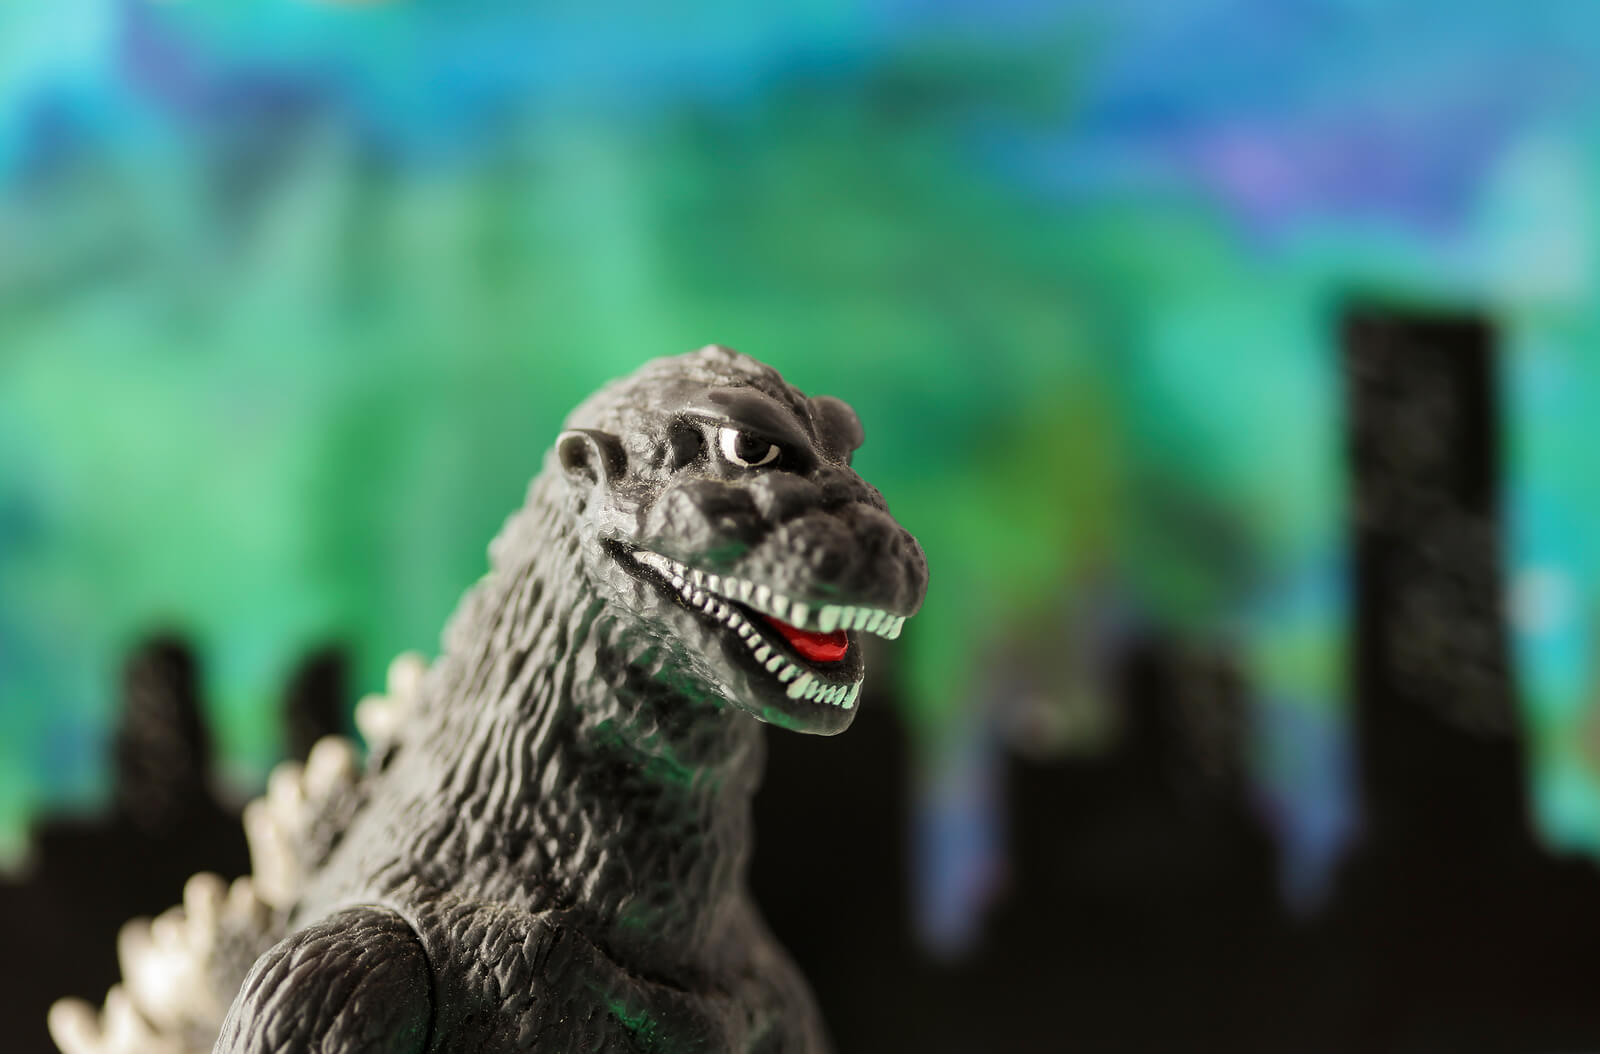 A Godzilla toy stands before a backround depicting a city.